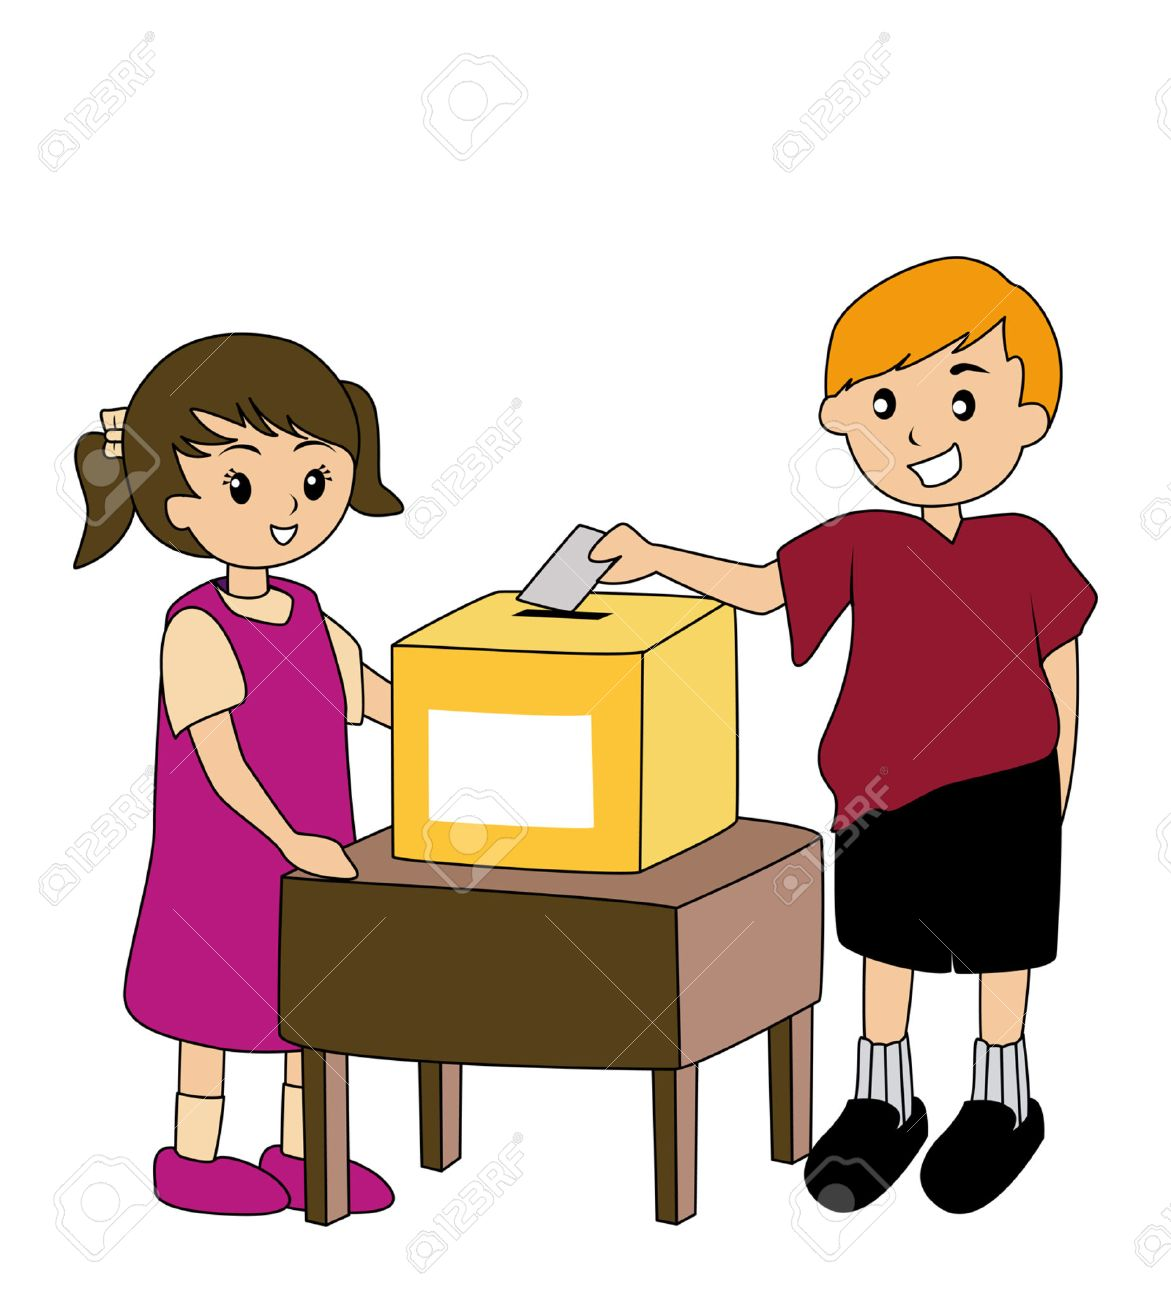 Illustration of Kids with Ballot Box Stock Vector - 1830378